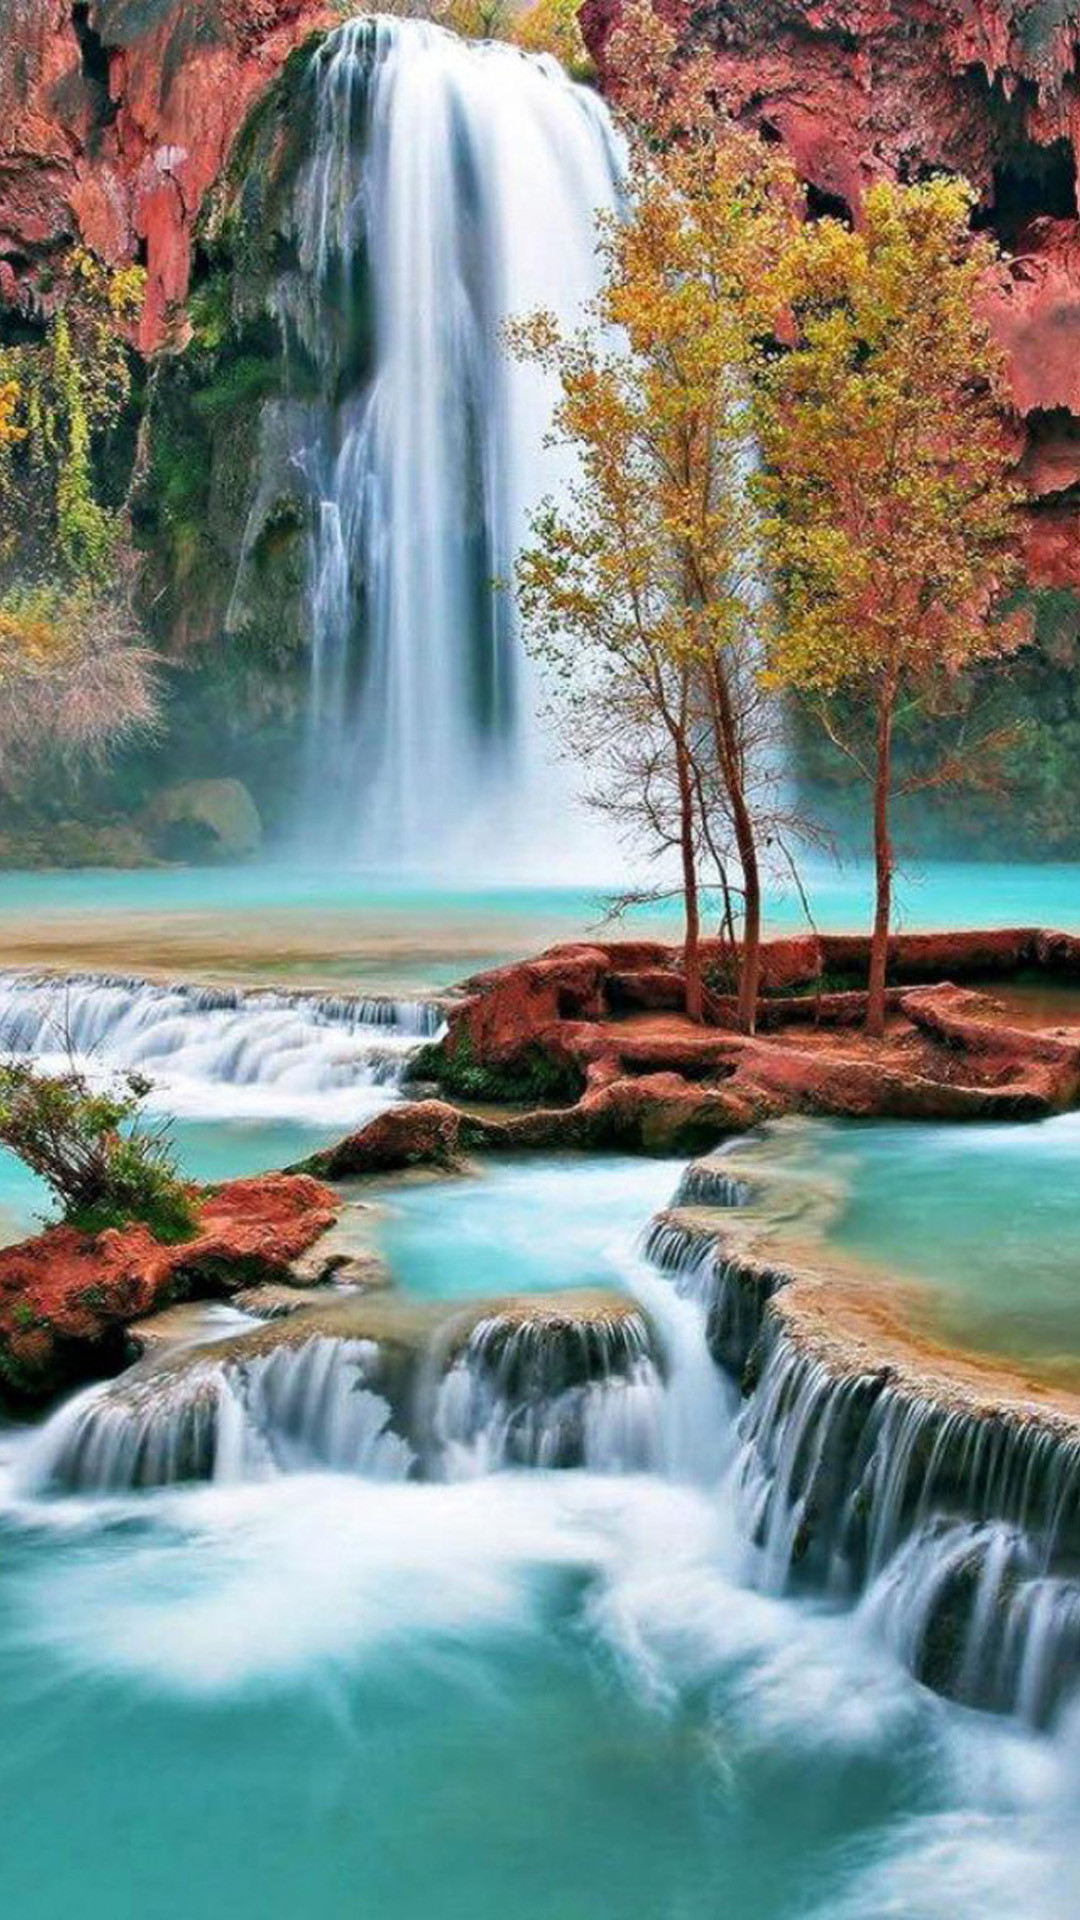 Beautiful Nature Wallpapers Iphone 6 69 Images